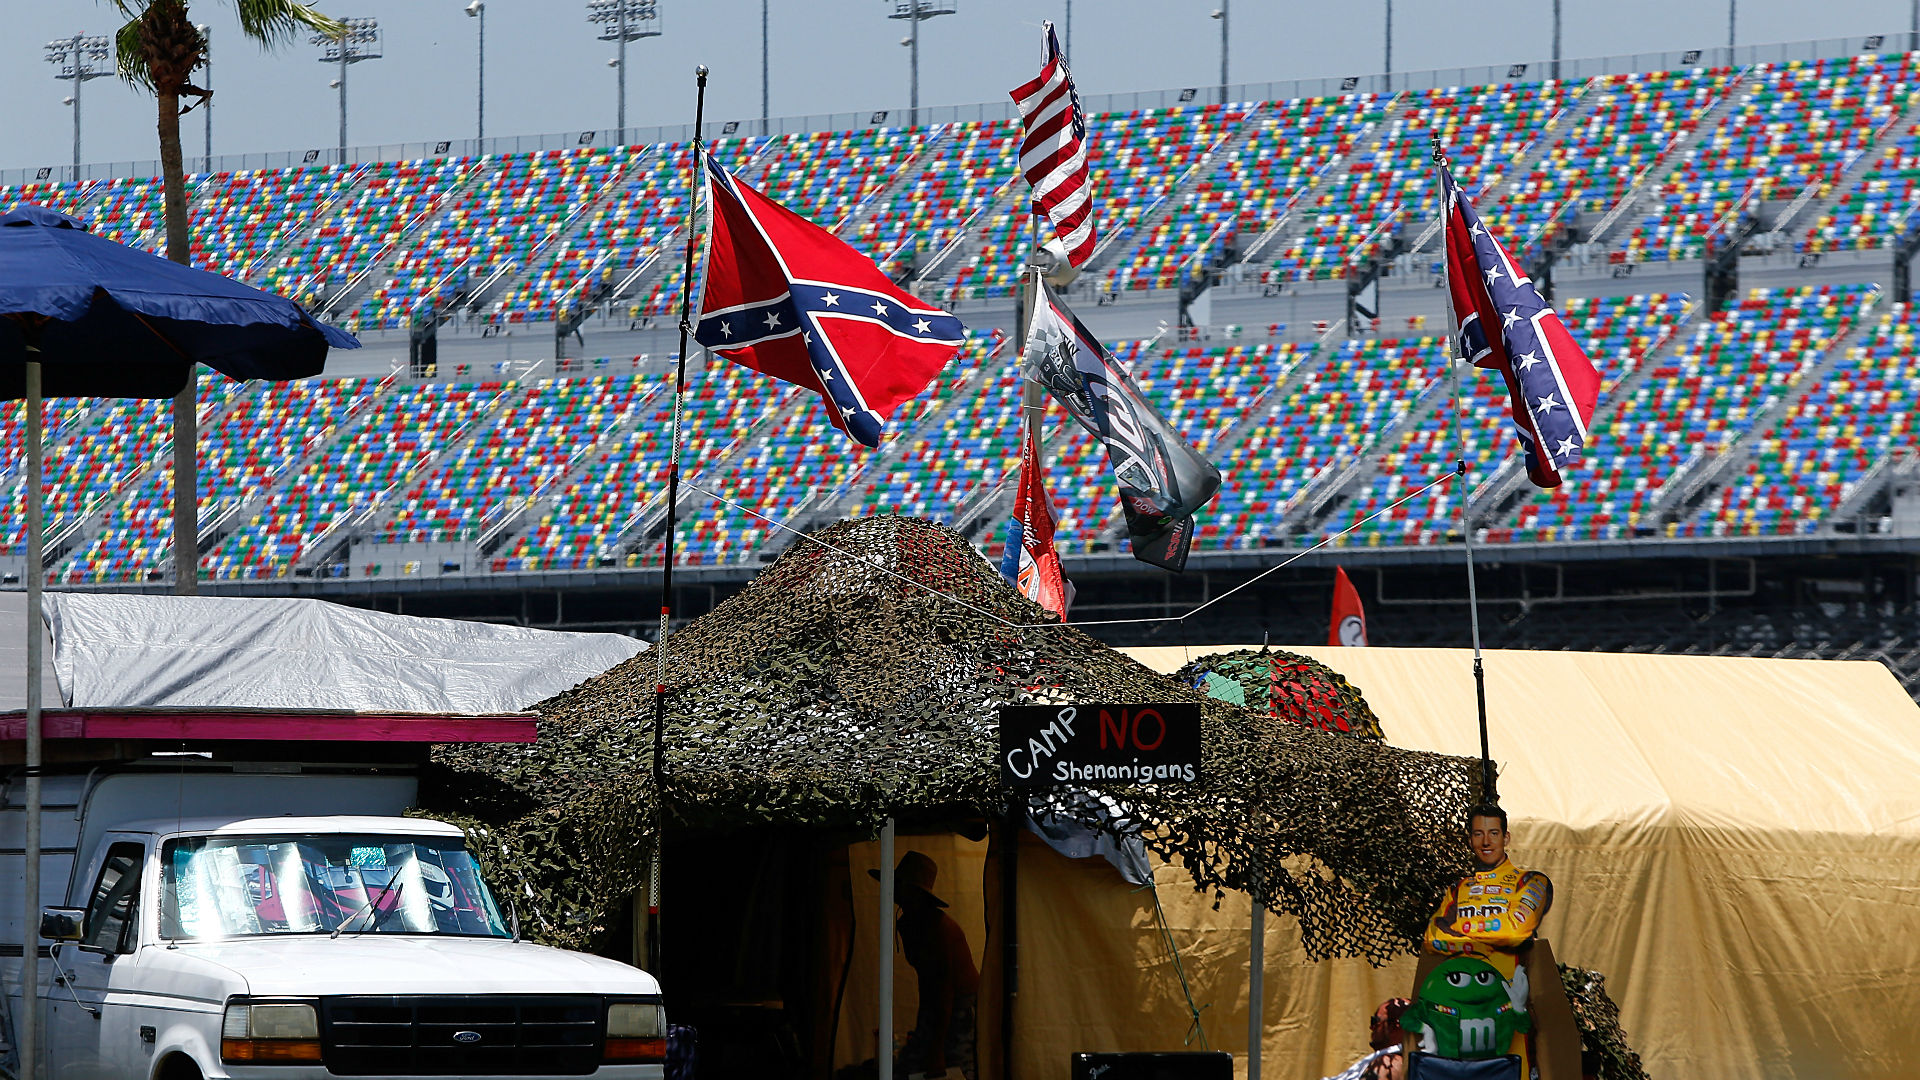 Confederate flags continue to fly at NASCAR's Daytona races